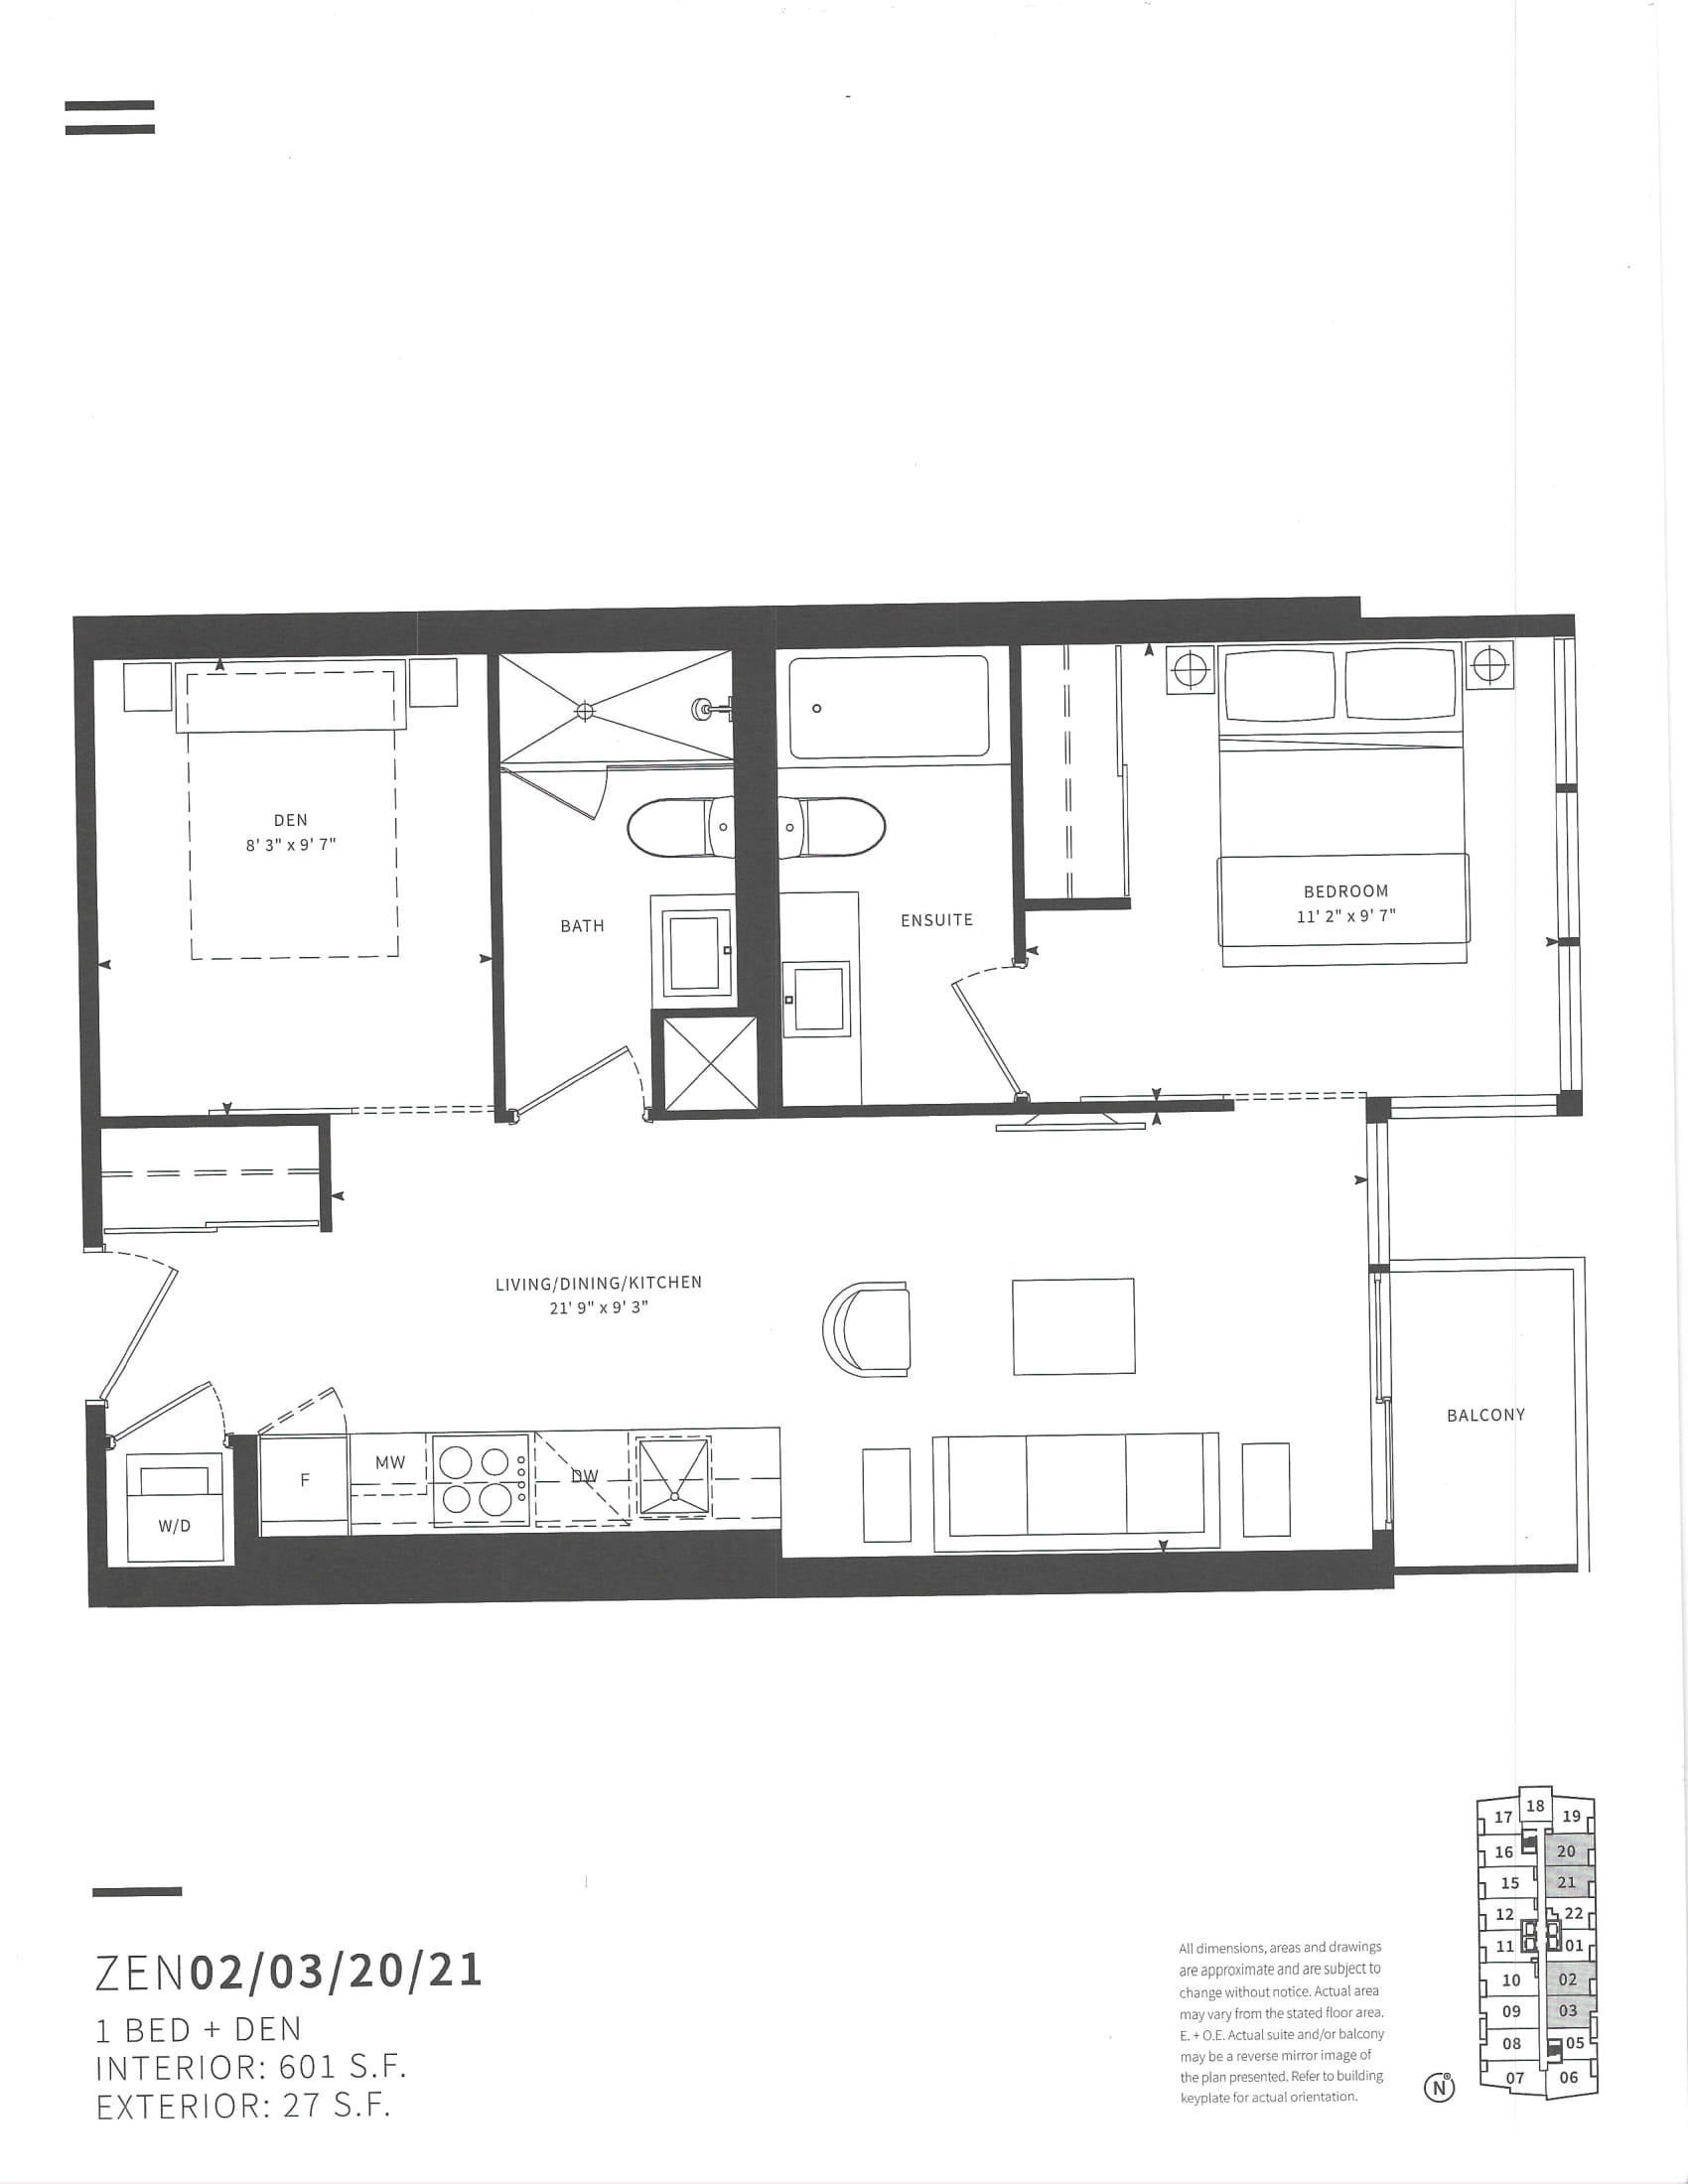 Floor plans for 19 Western Battery Rd Unit 2921.